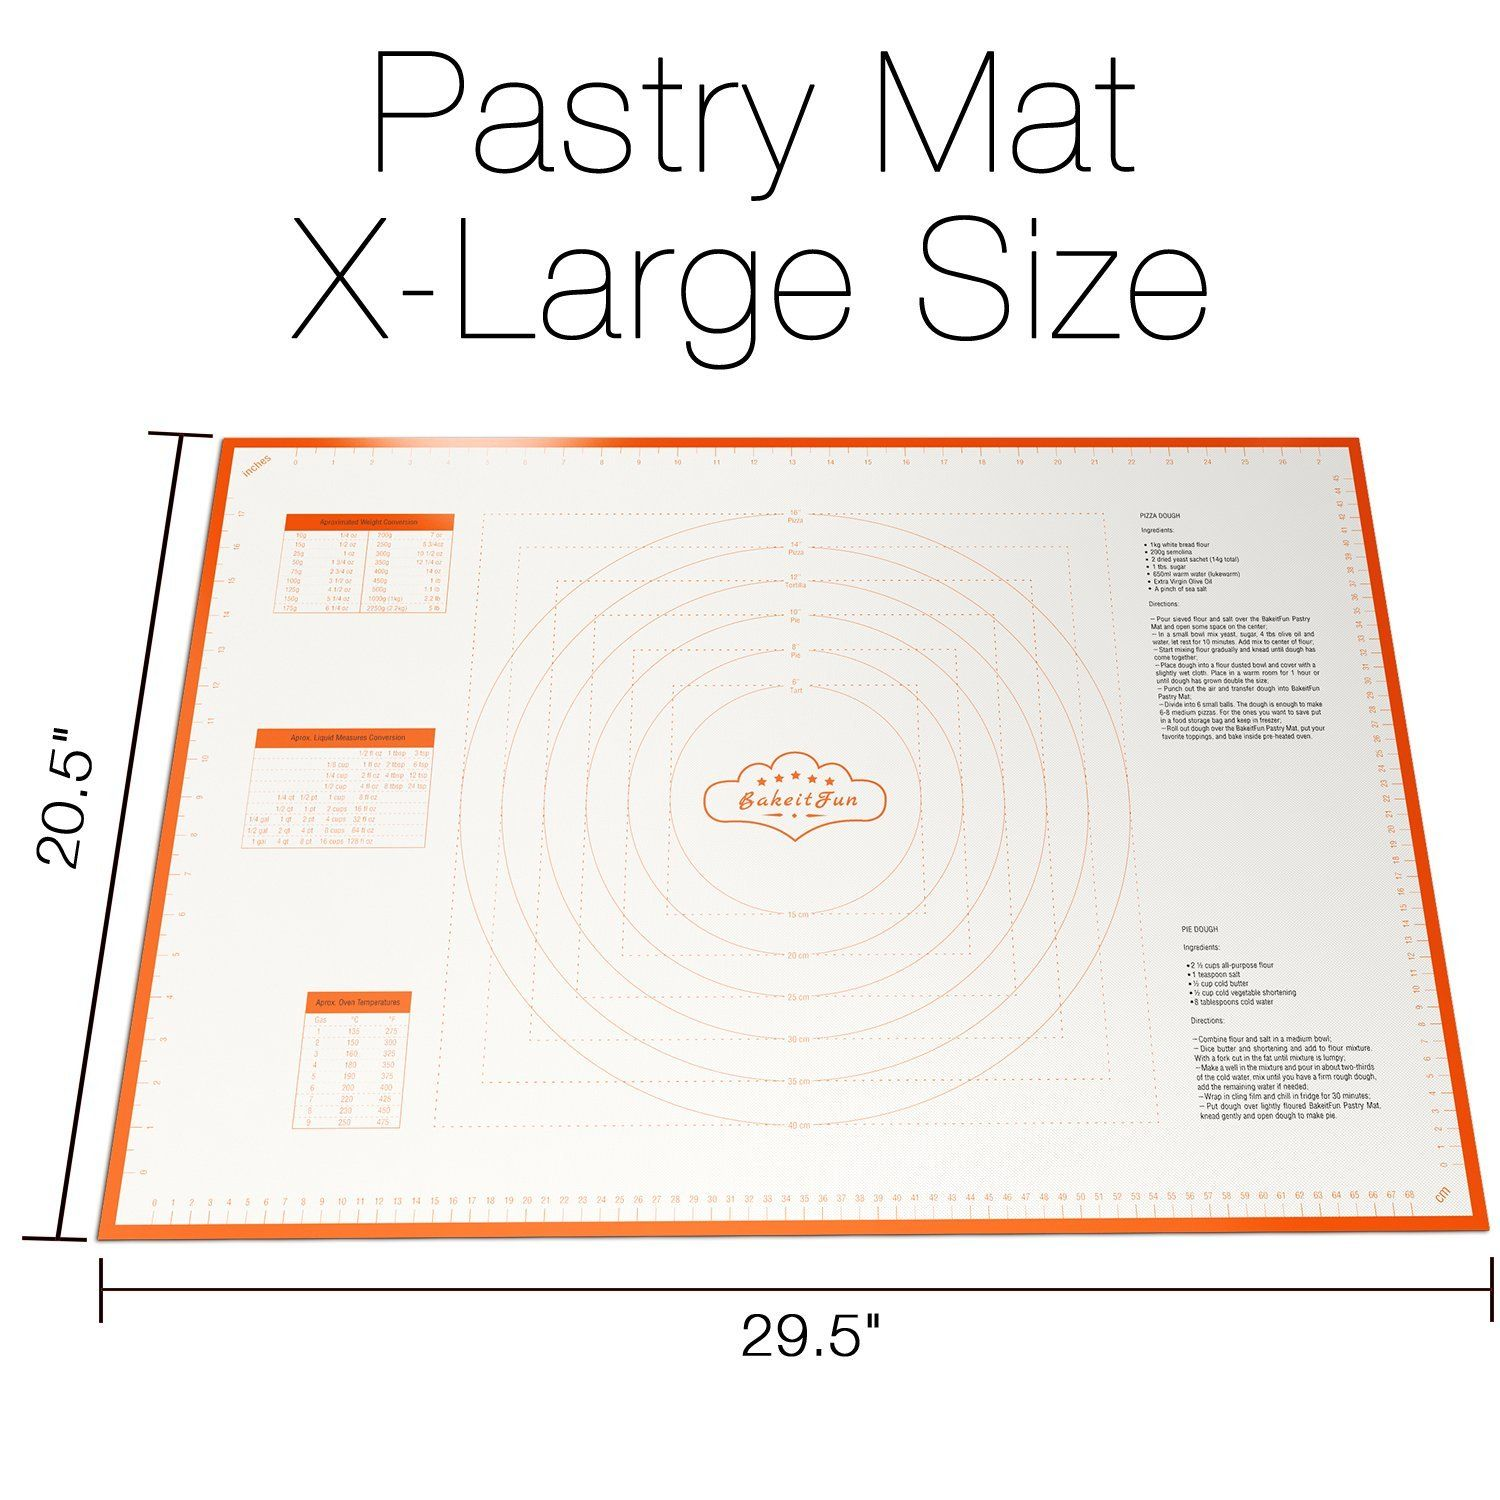 Amazon.com   BakeitFun X-Large Silicone Pastry Mat With Measurements, 29.5 x 20.5 Inches, Full Sticks To Countertop For Rolling Dough, Conversion Information Included, Perfect Fondant Surface, Jumbo Size, Orange: Chip & Dip Sets